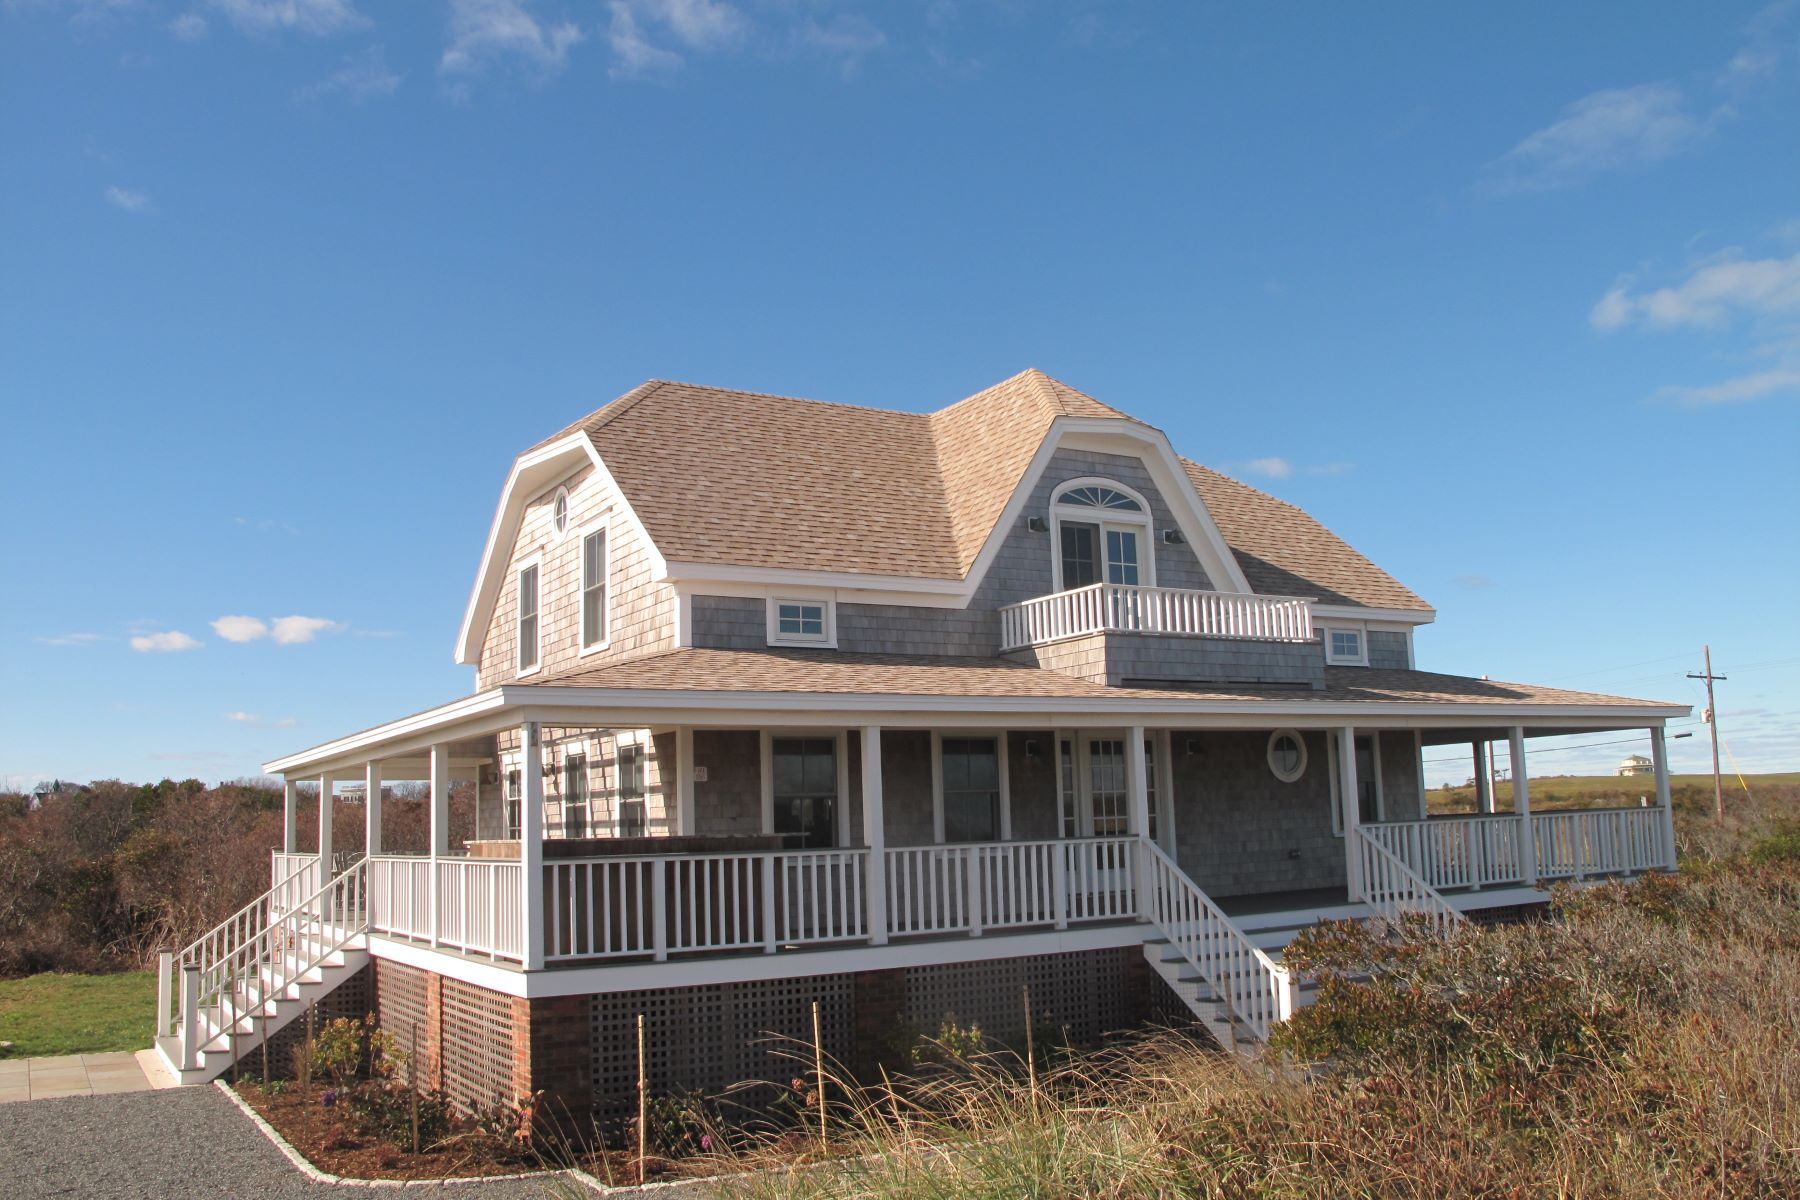 Single Family Home for Sale at Steps to the Beach 151 Corn Neck Road Block Island, Rhode Island, 02807 United States